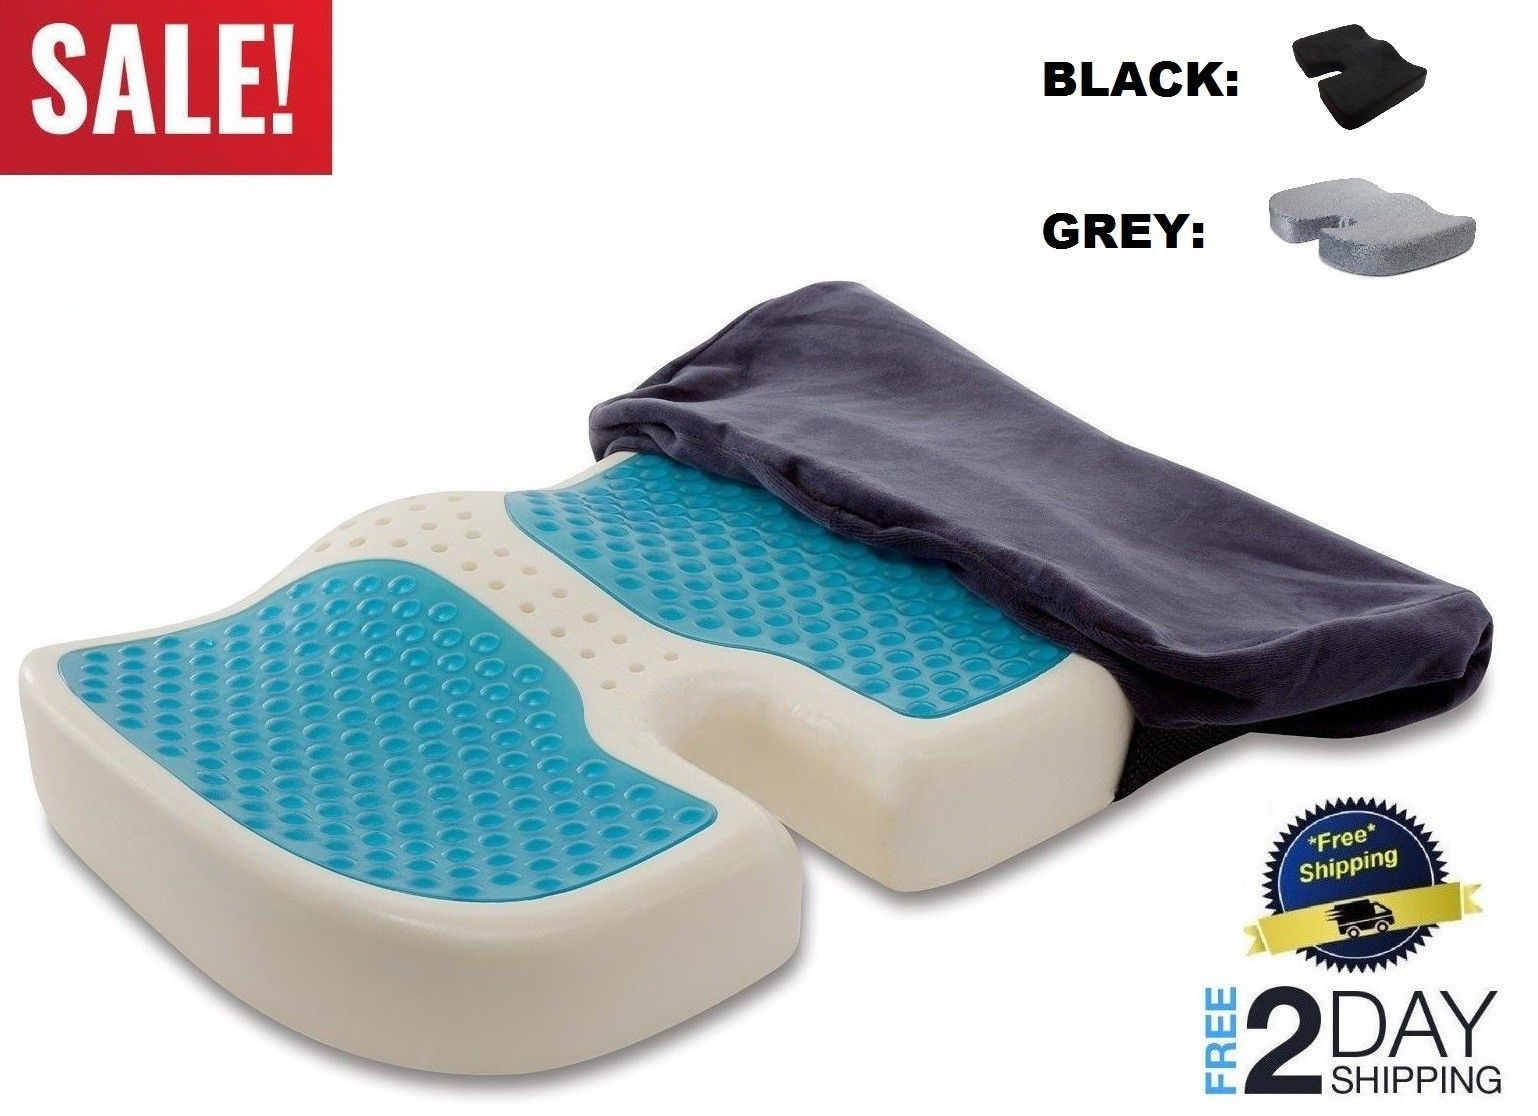 Seat cushion gel pillow cooling coccyx prostate hemorrhoid pain